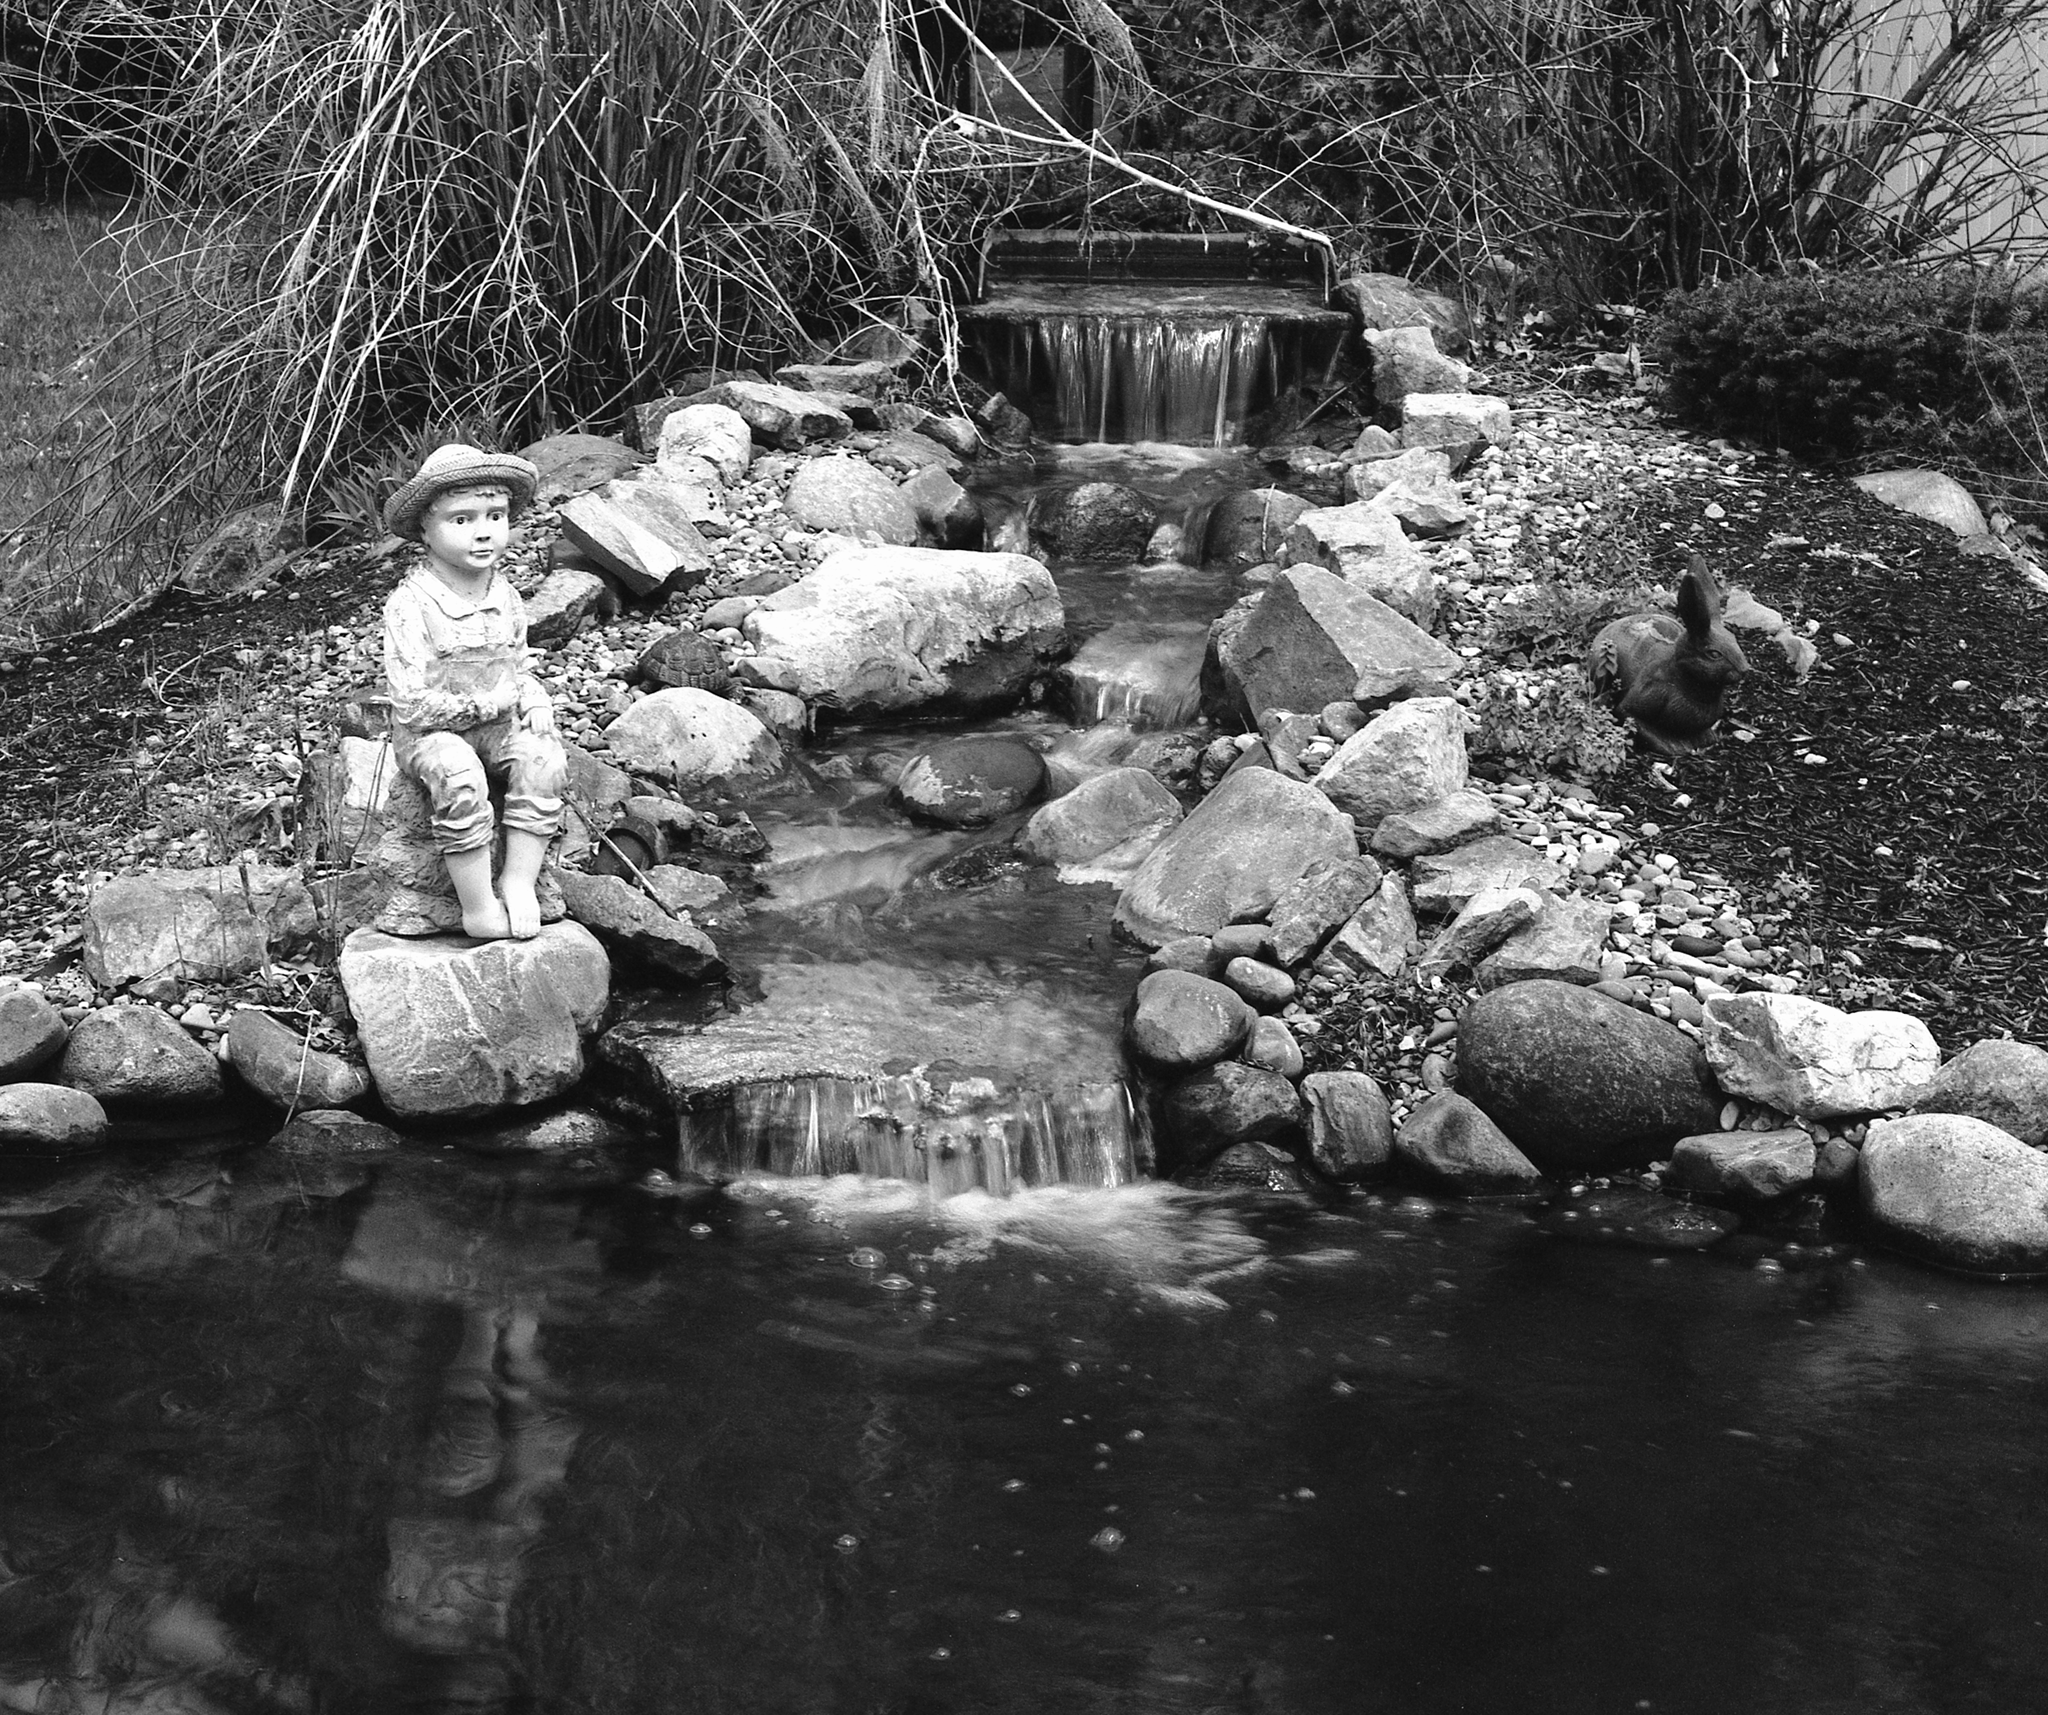 4x5_for_365_project_0107_pond.png